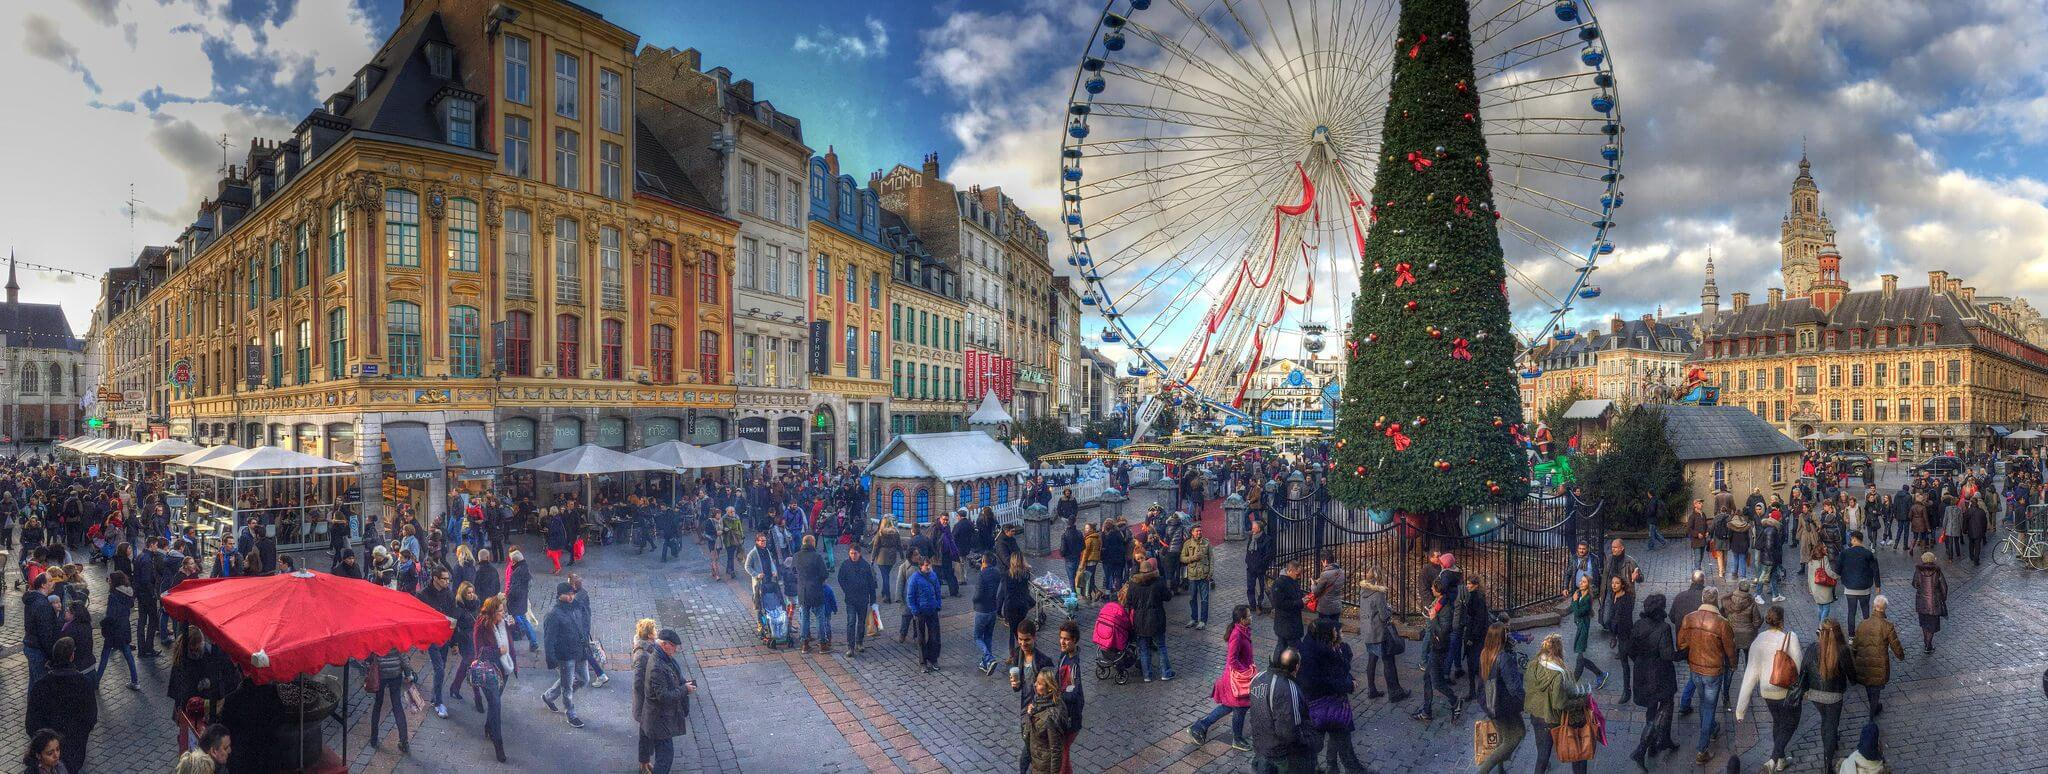 lille-at-christmas